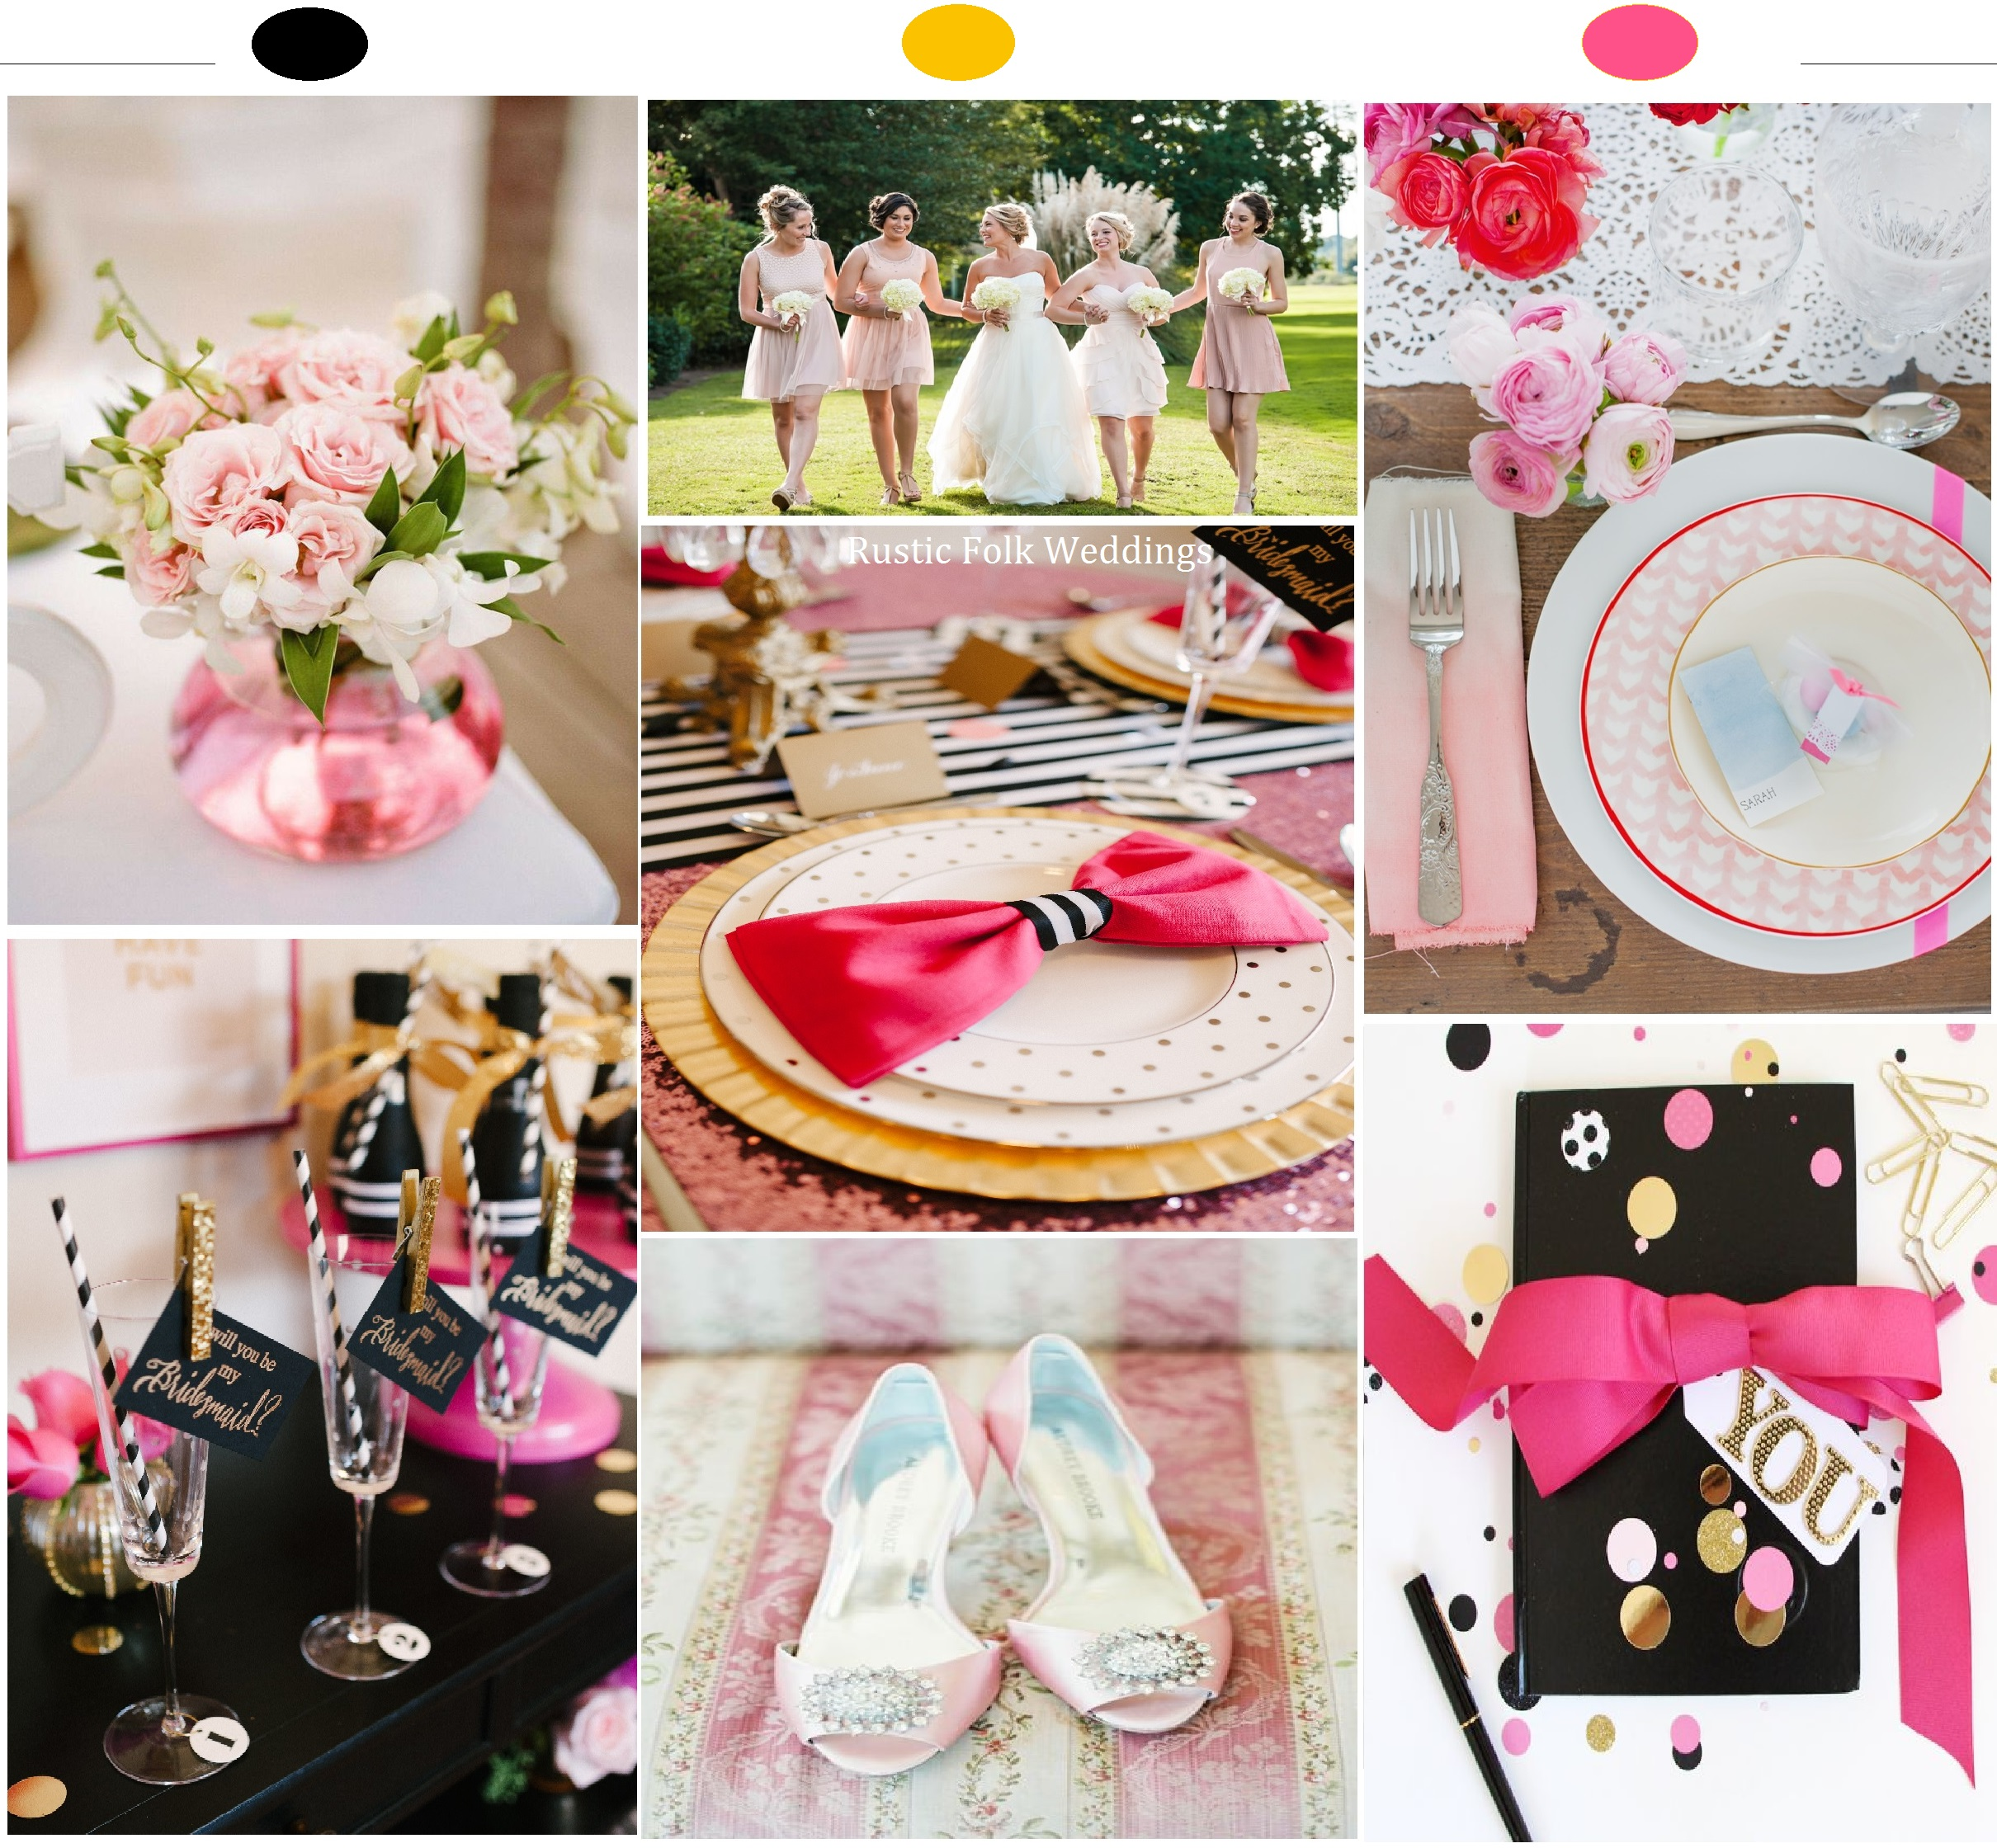 Pretty in Pink Wedding Inspiration Board